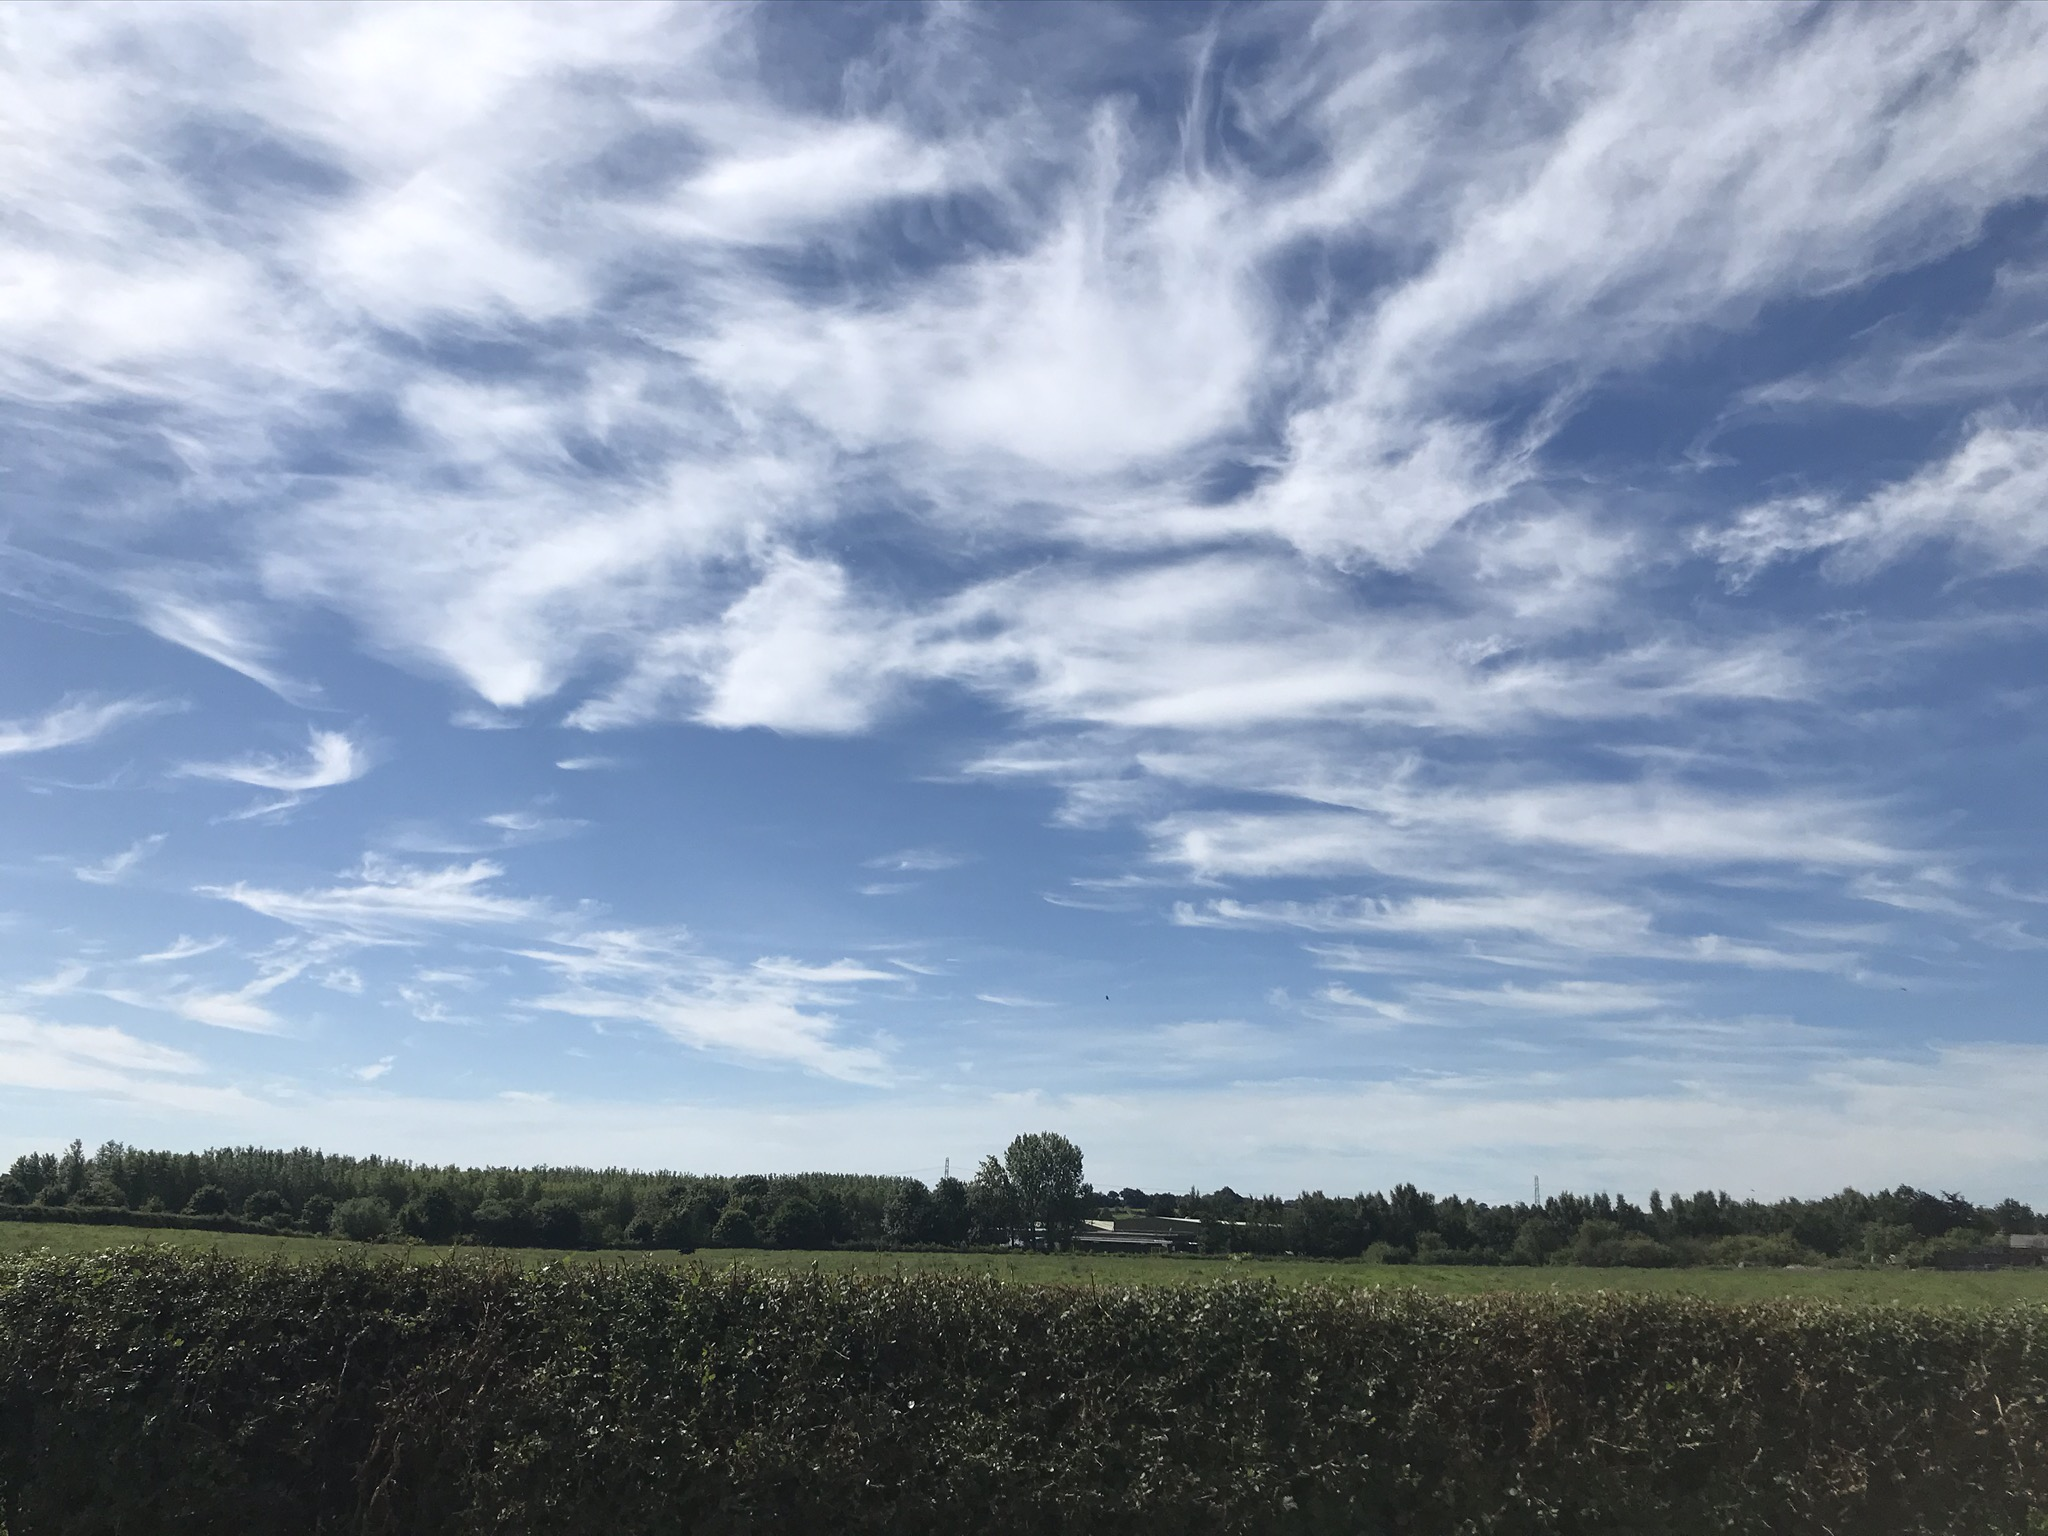 High whispy clouds in a blue sky above a neat field hedge